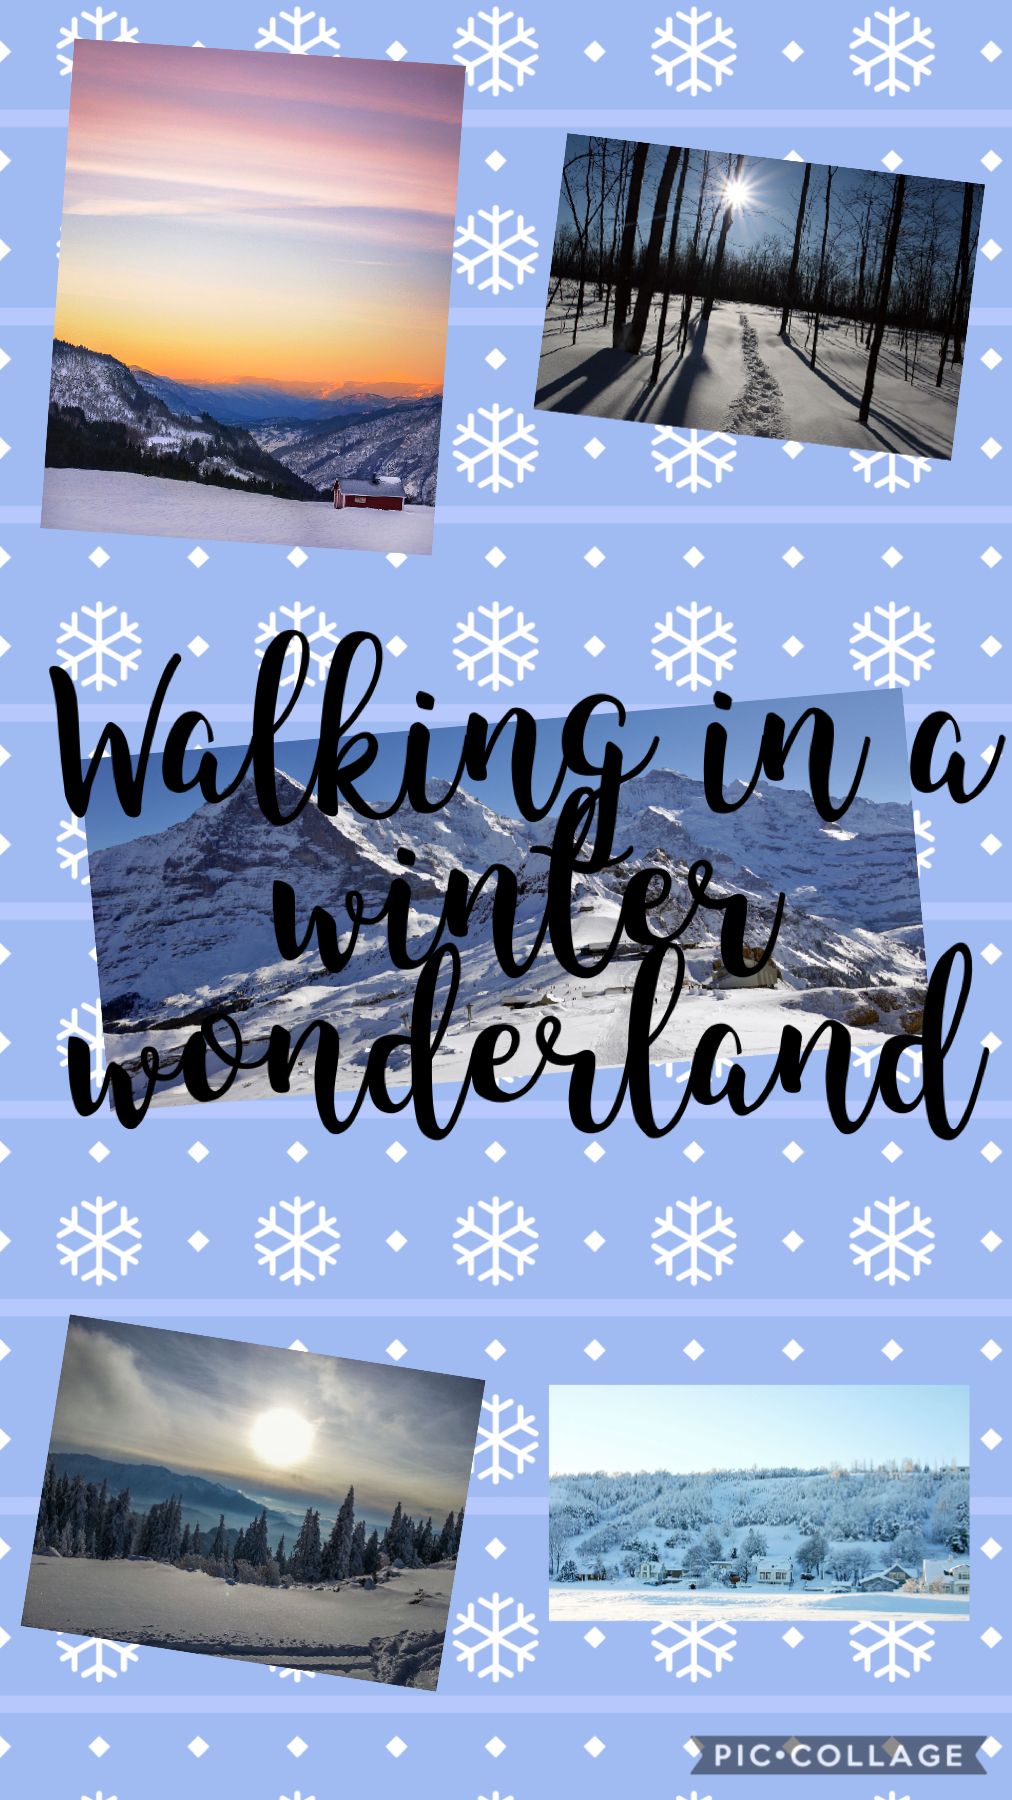 Walking in a winter wonderland!! What is your favorite part of winter ❄️ I love to walking around in the snow and decorate my Christmas trees!!